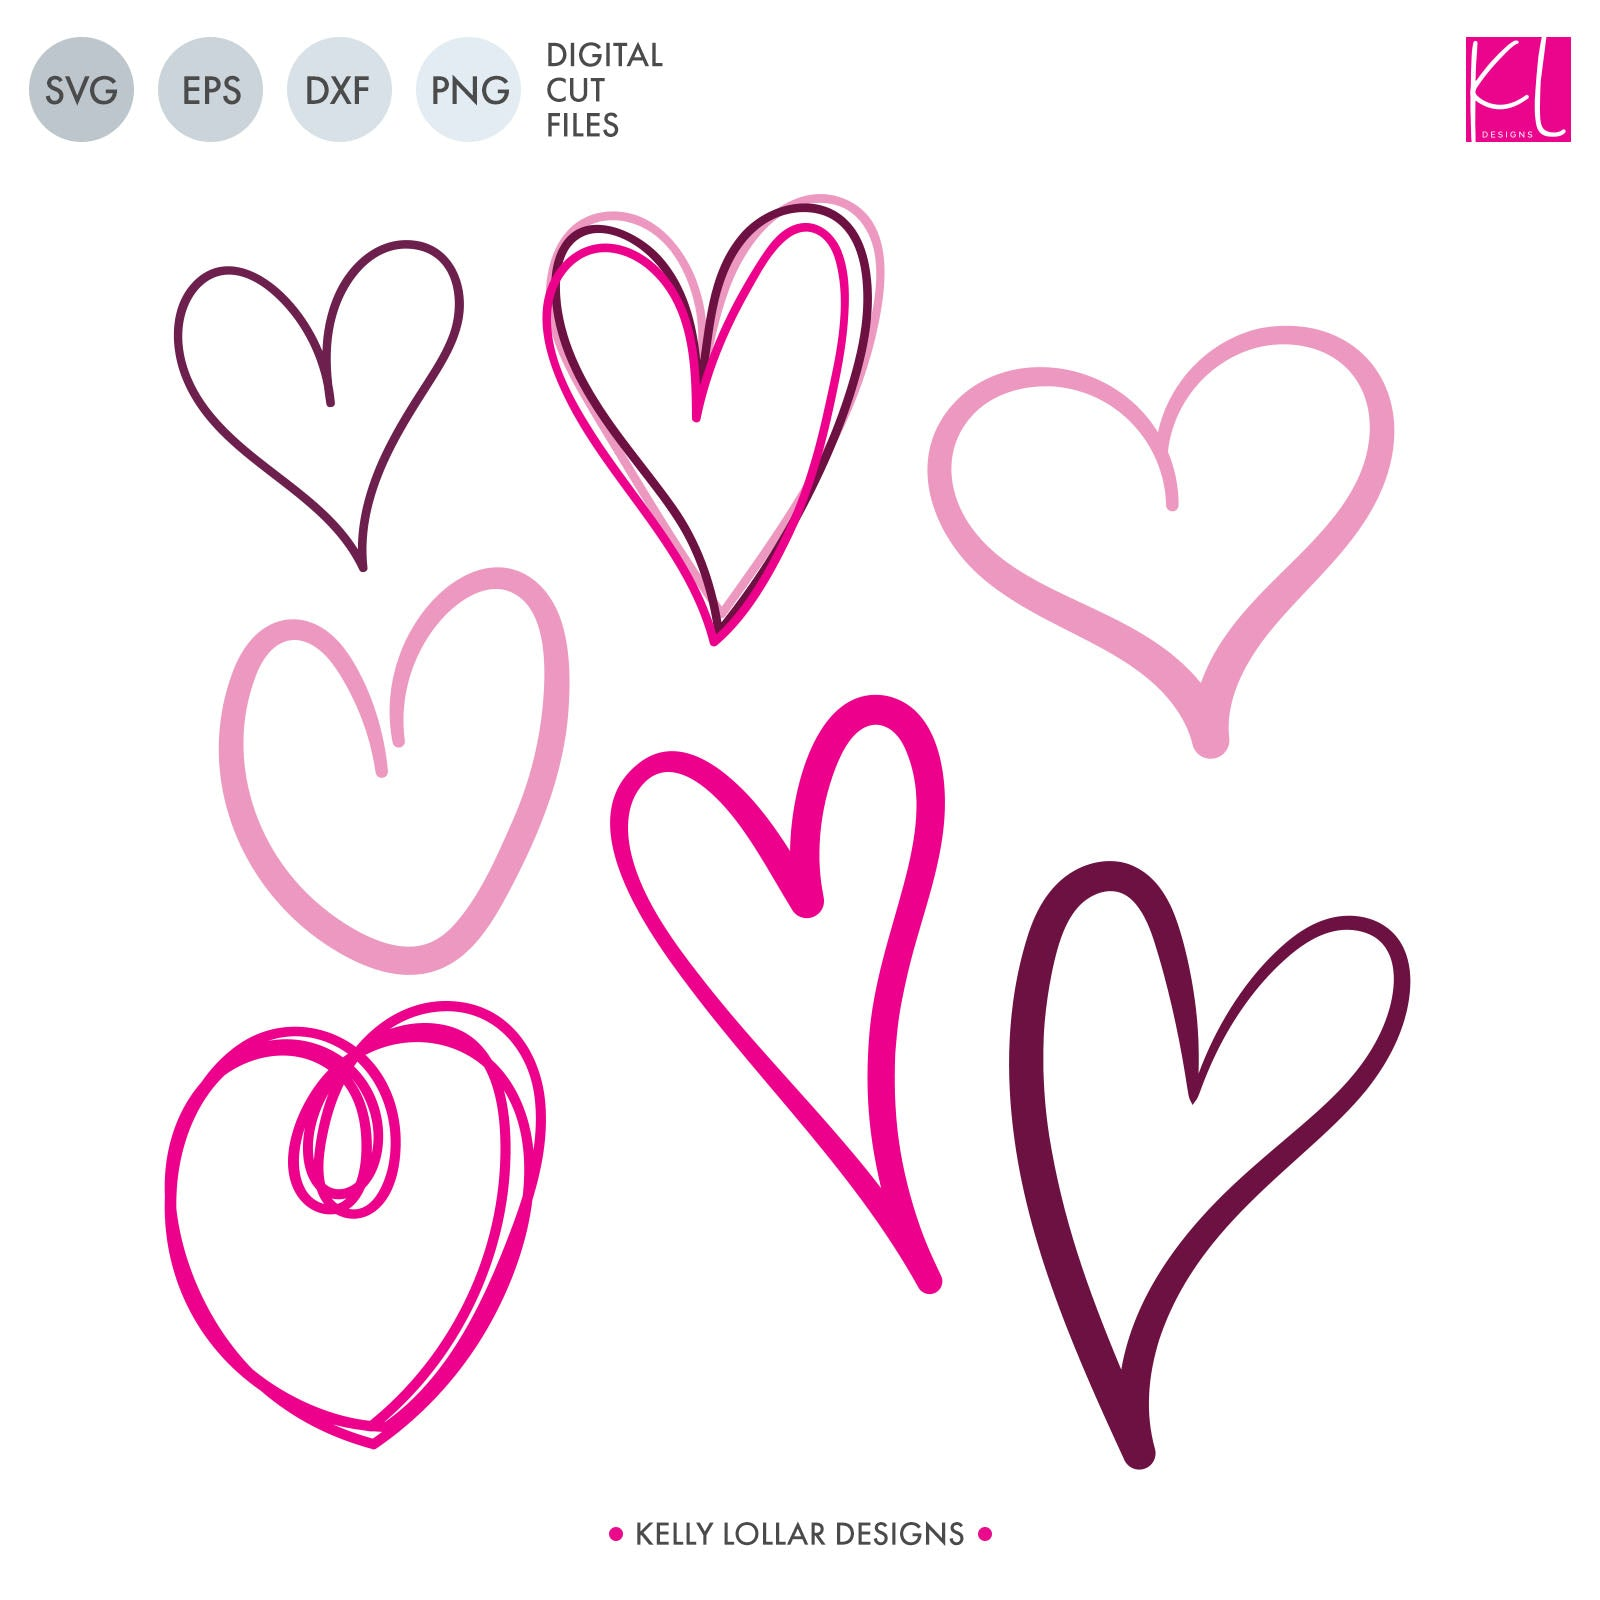 Free Doodle Hearts SVG Cut Files - Kelly Lollar Designs